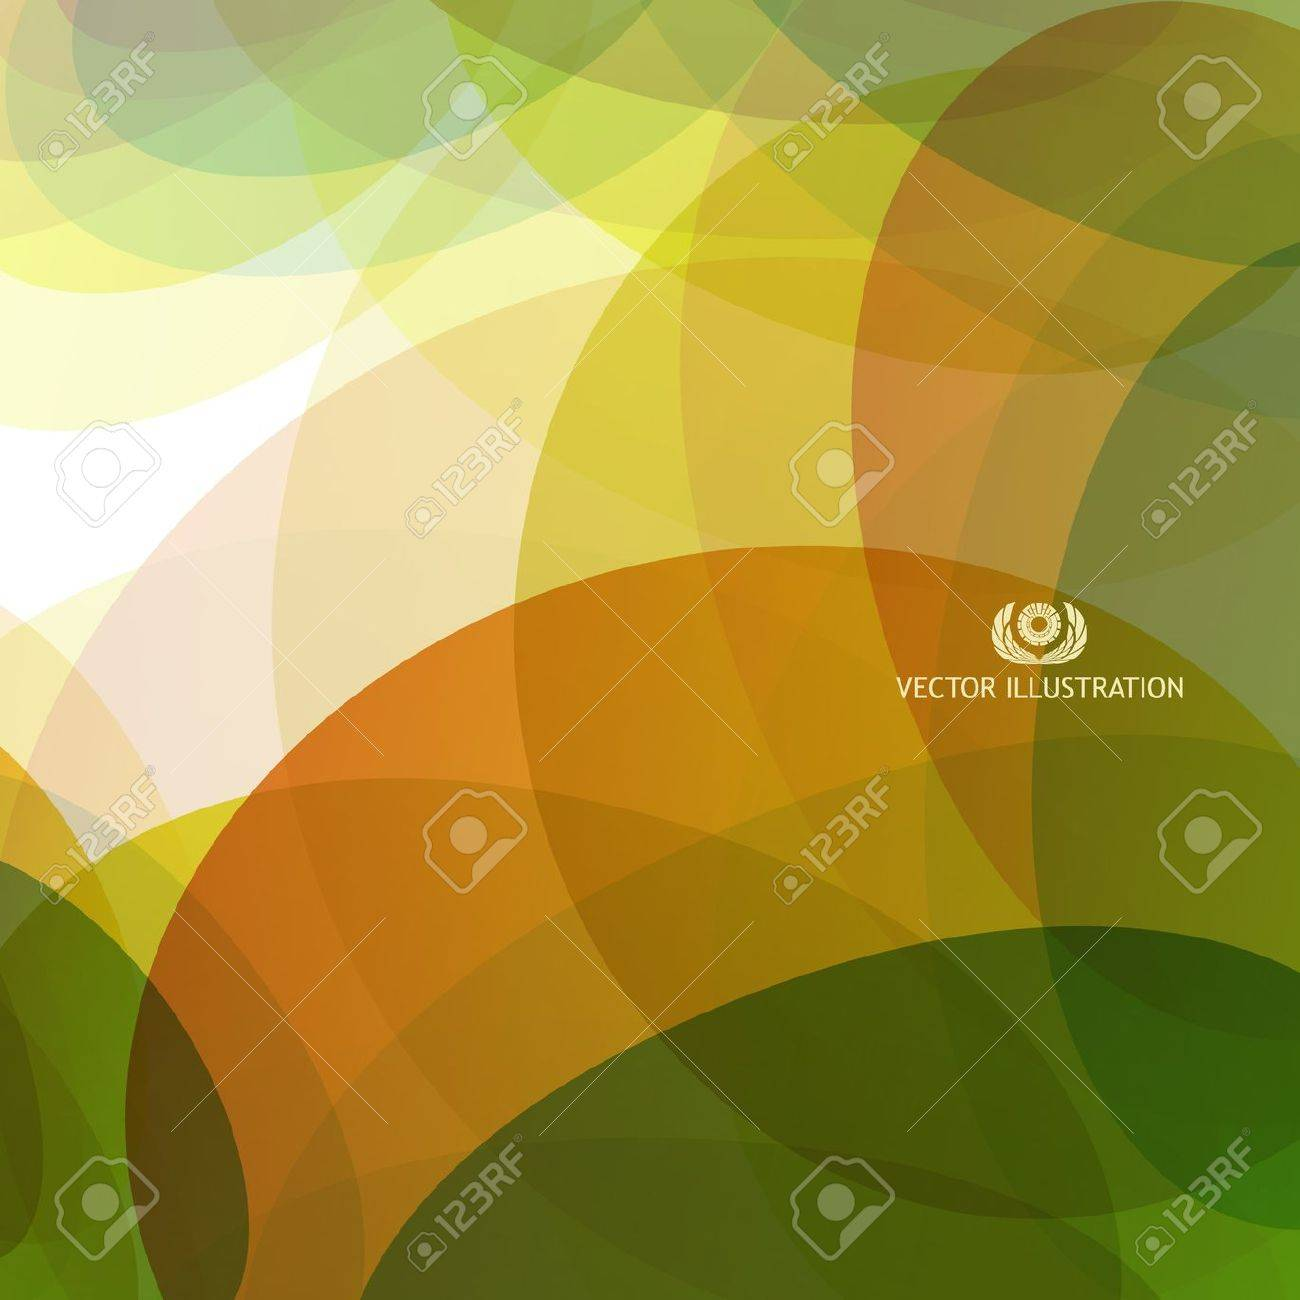 Creative background Stock Vector - 15178113